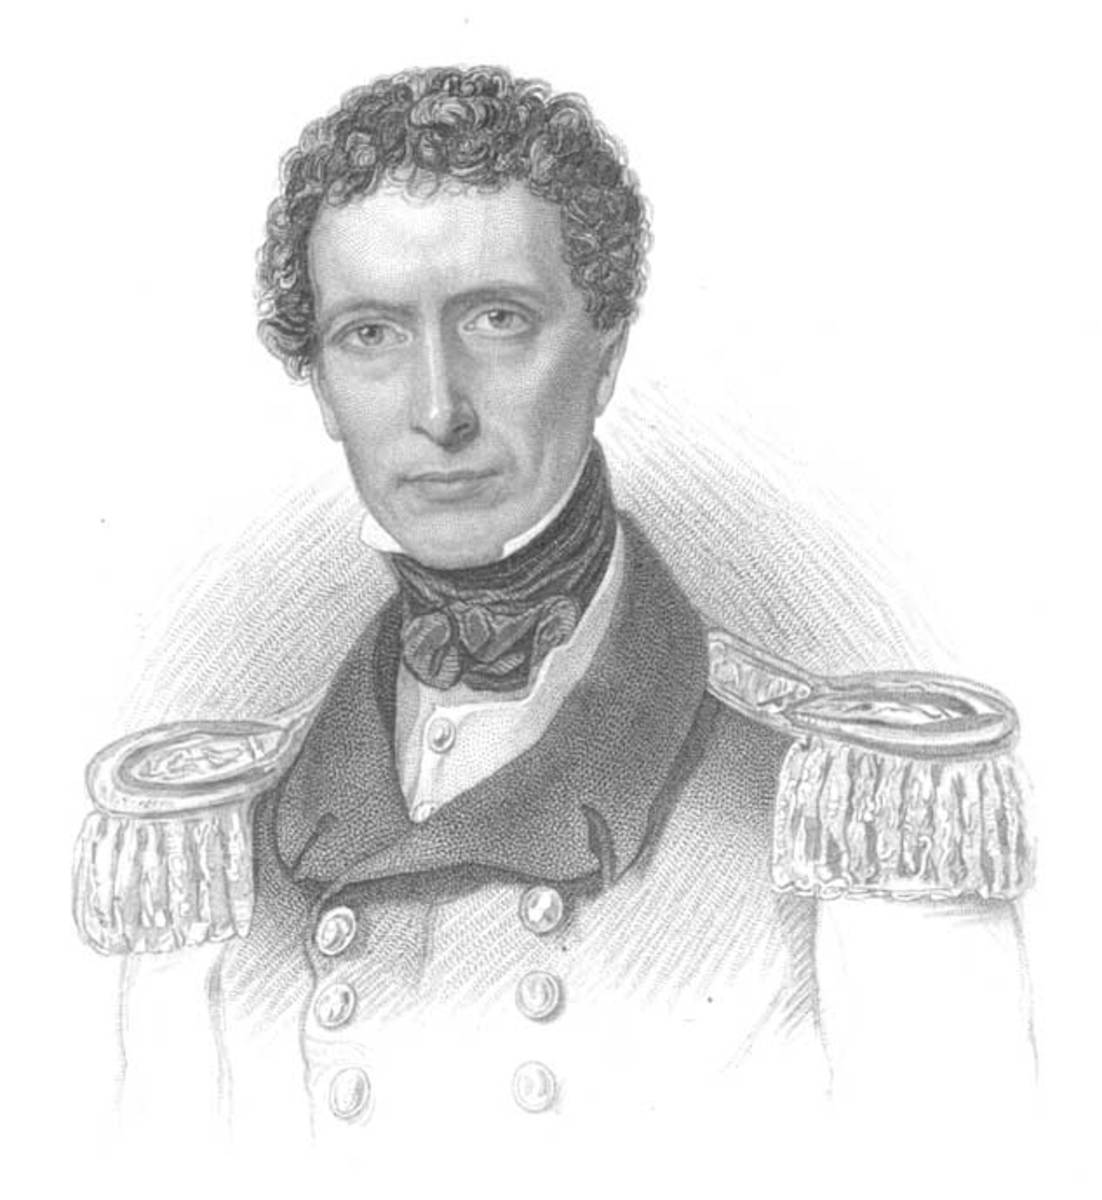 ALLEN GARDINER, COMMANDER, BRITISH ROYAL NAVY